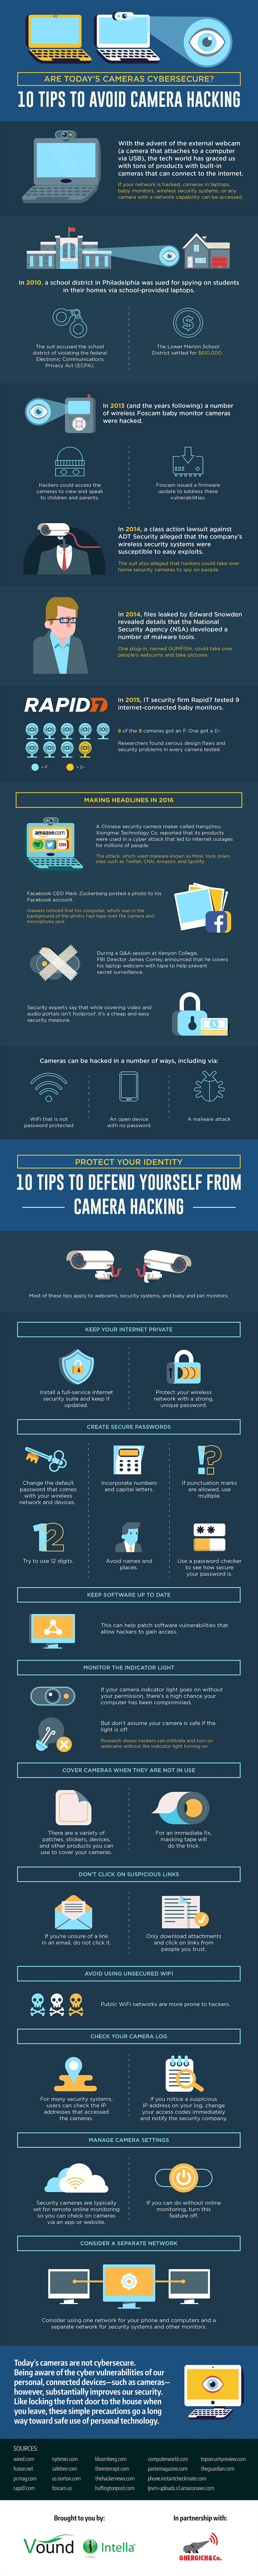 tips-to-avoid-camera-hacking